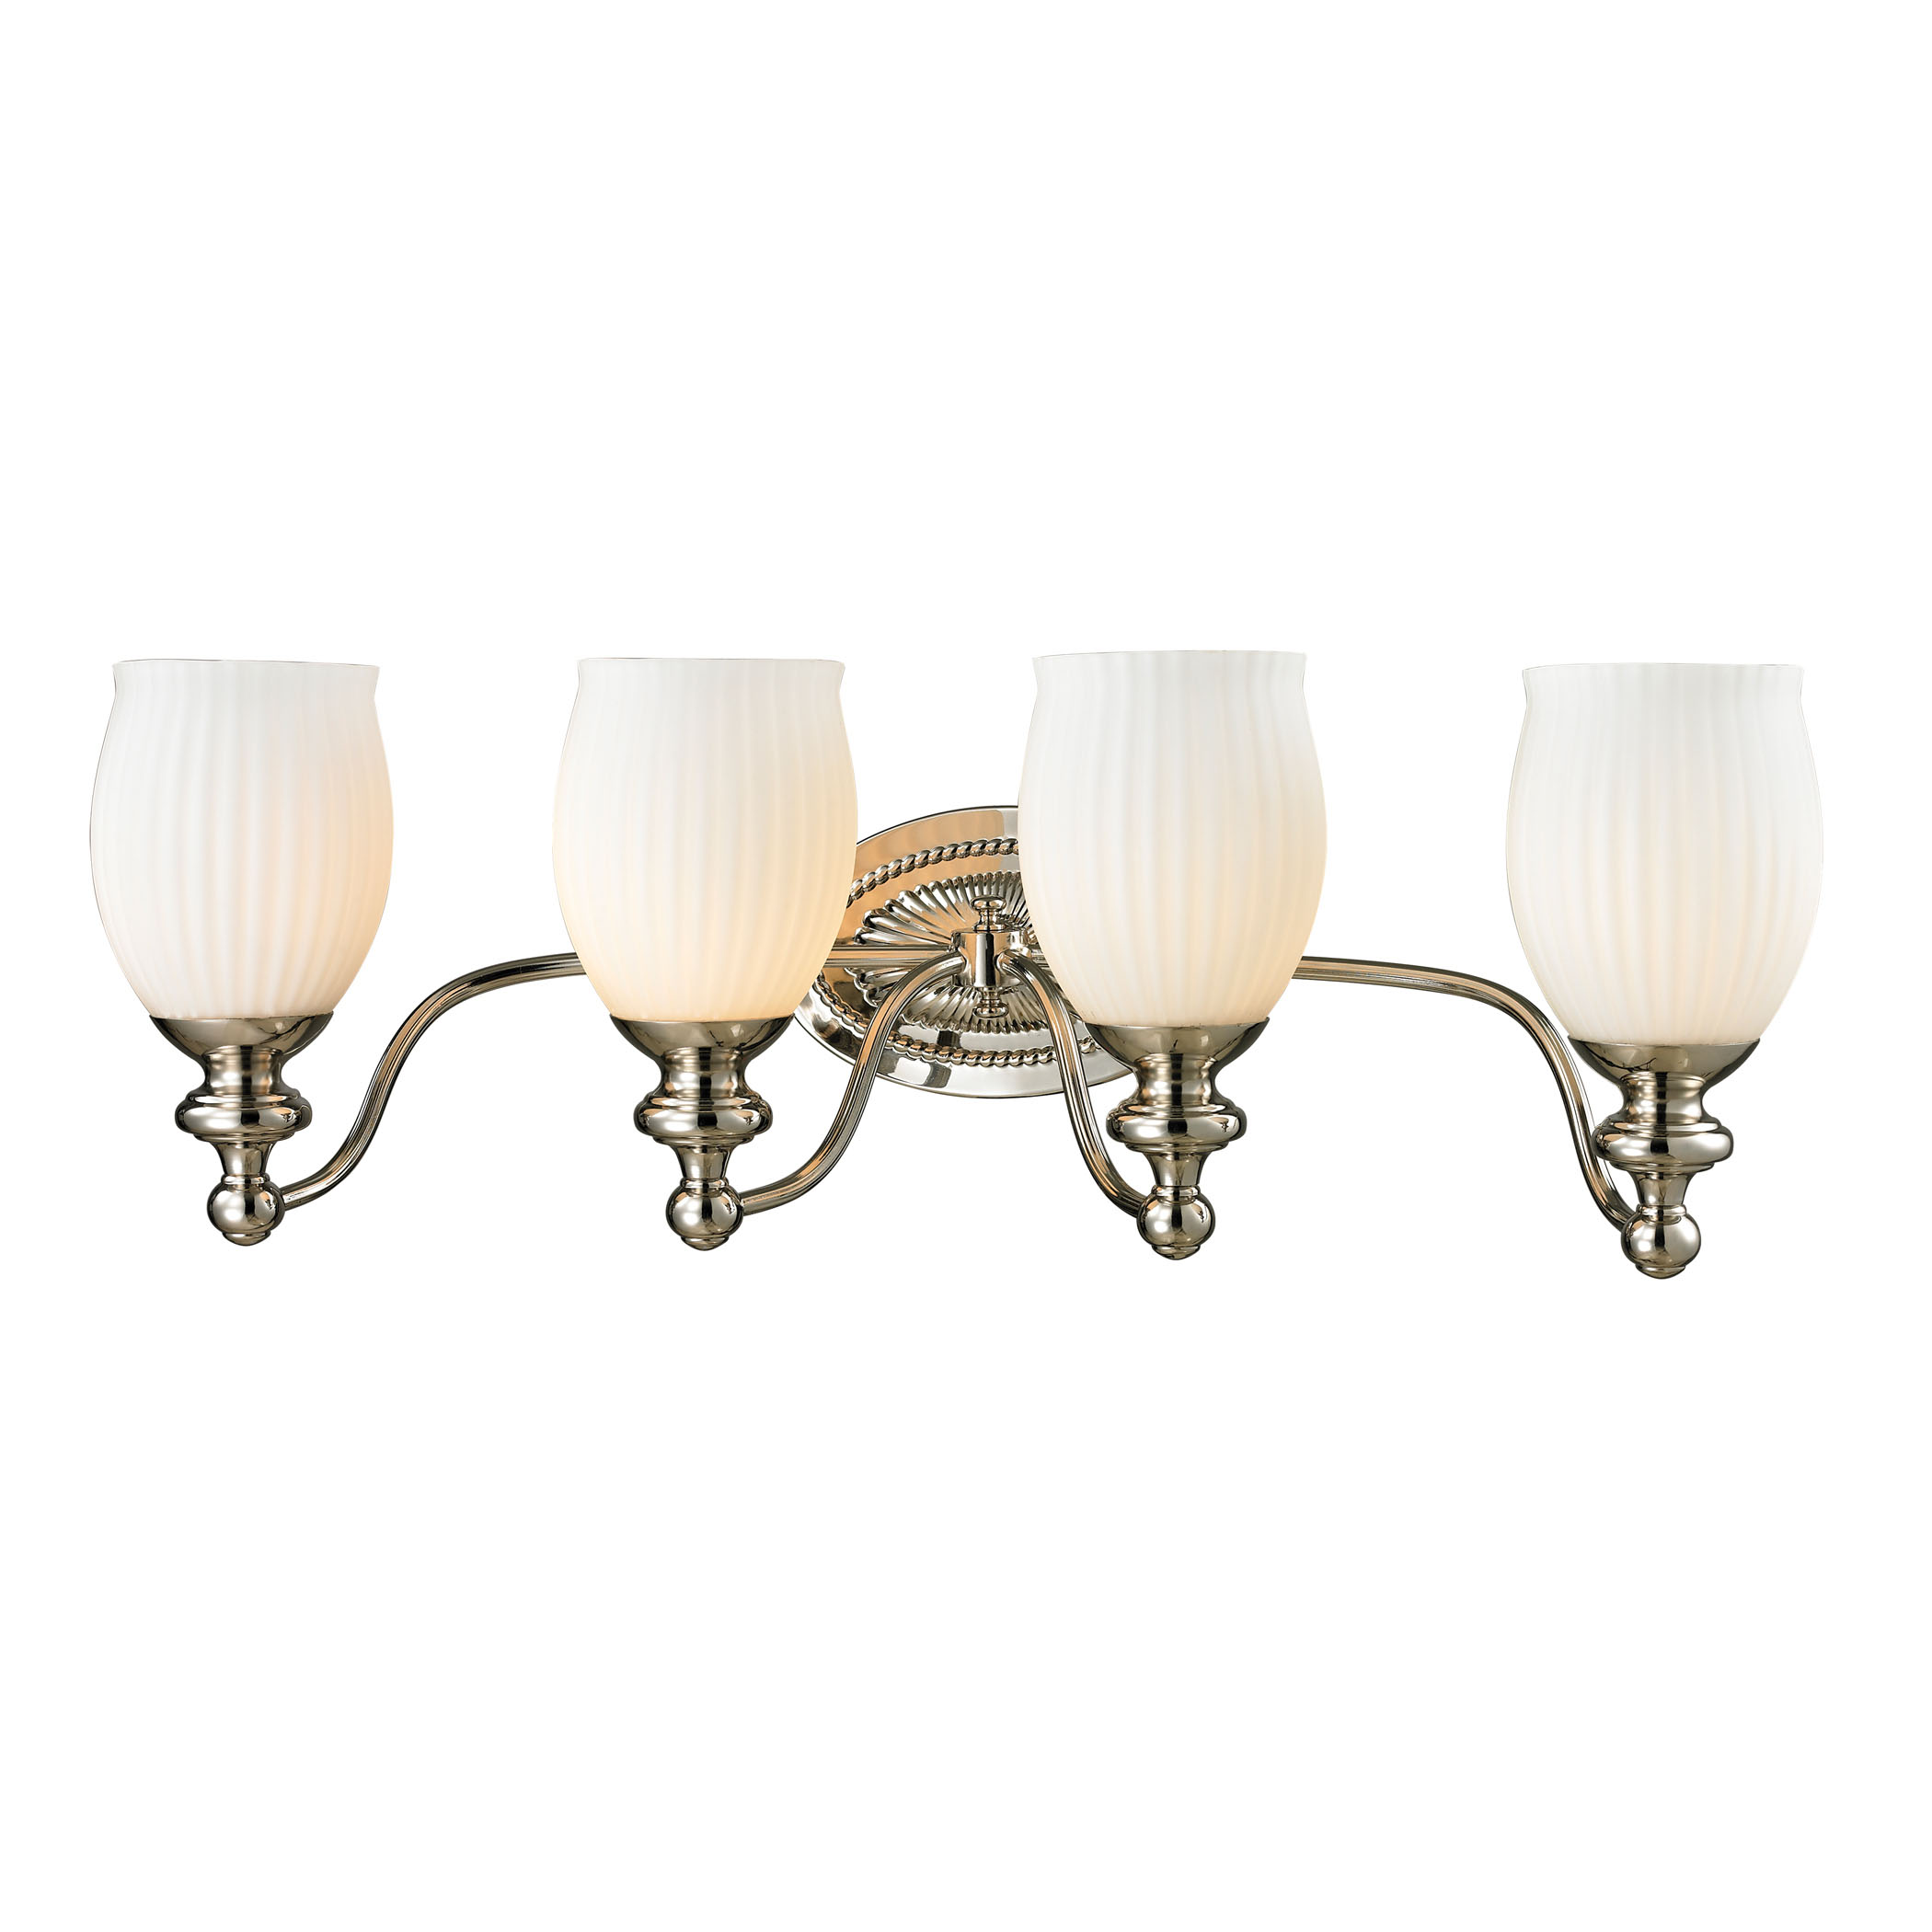 Park Ridge Collection 4 Light Bath in Polished Nickel